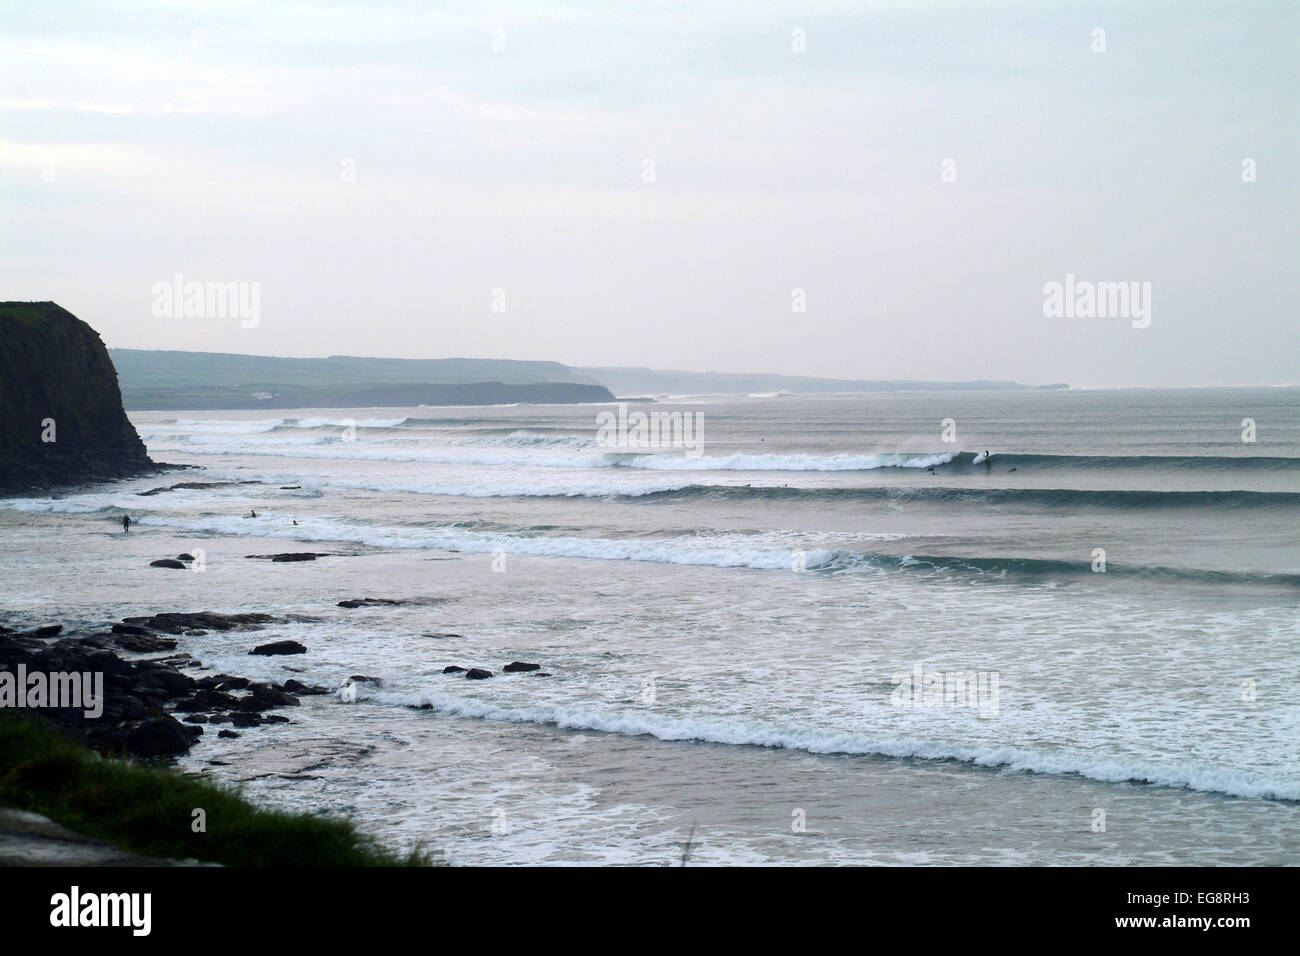 long perfect waves at Lahinch, Ireland peel across the  beach on Ireland's unspoilt west coast. - Stock Image